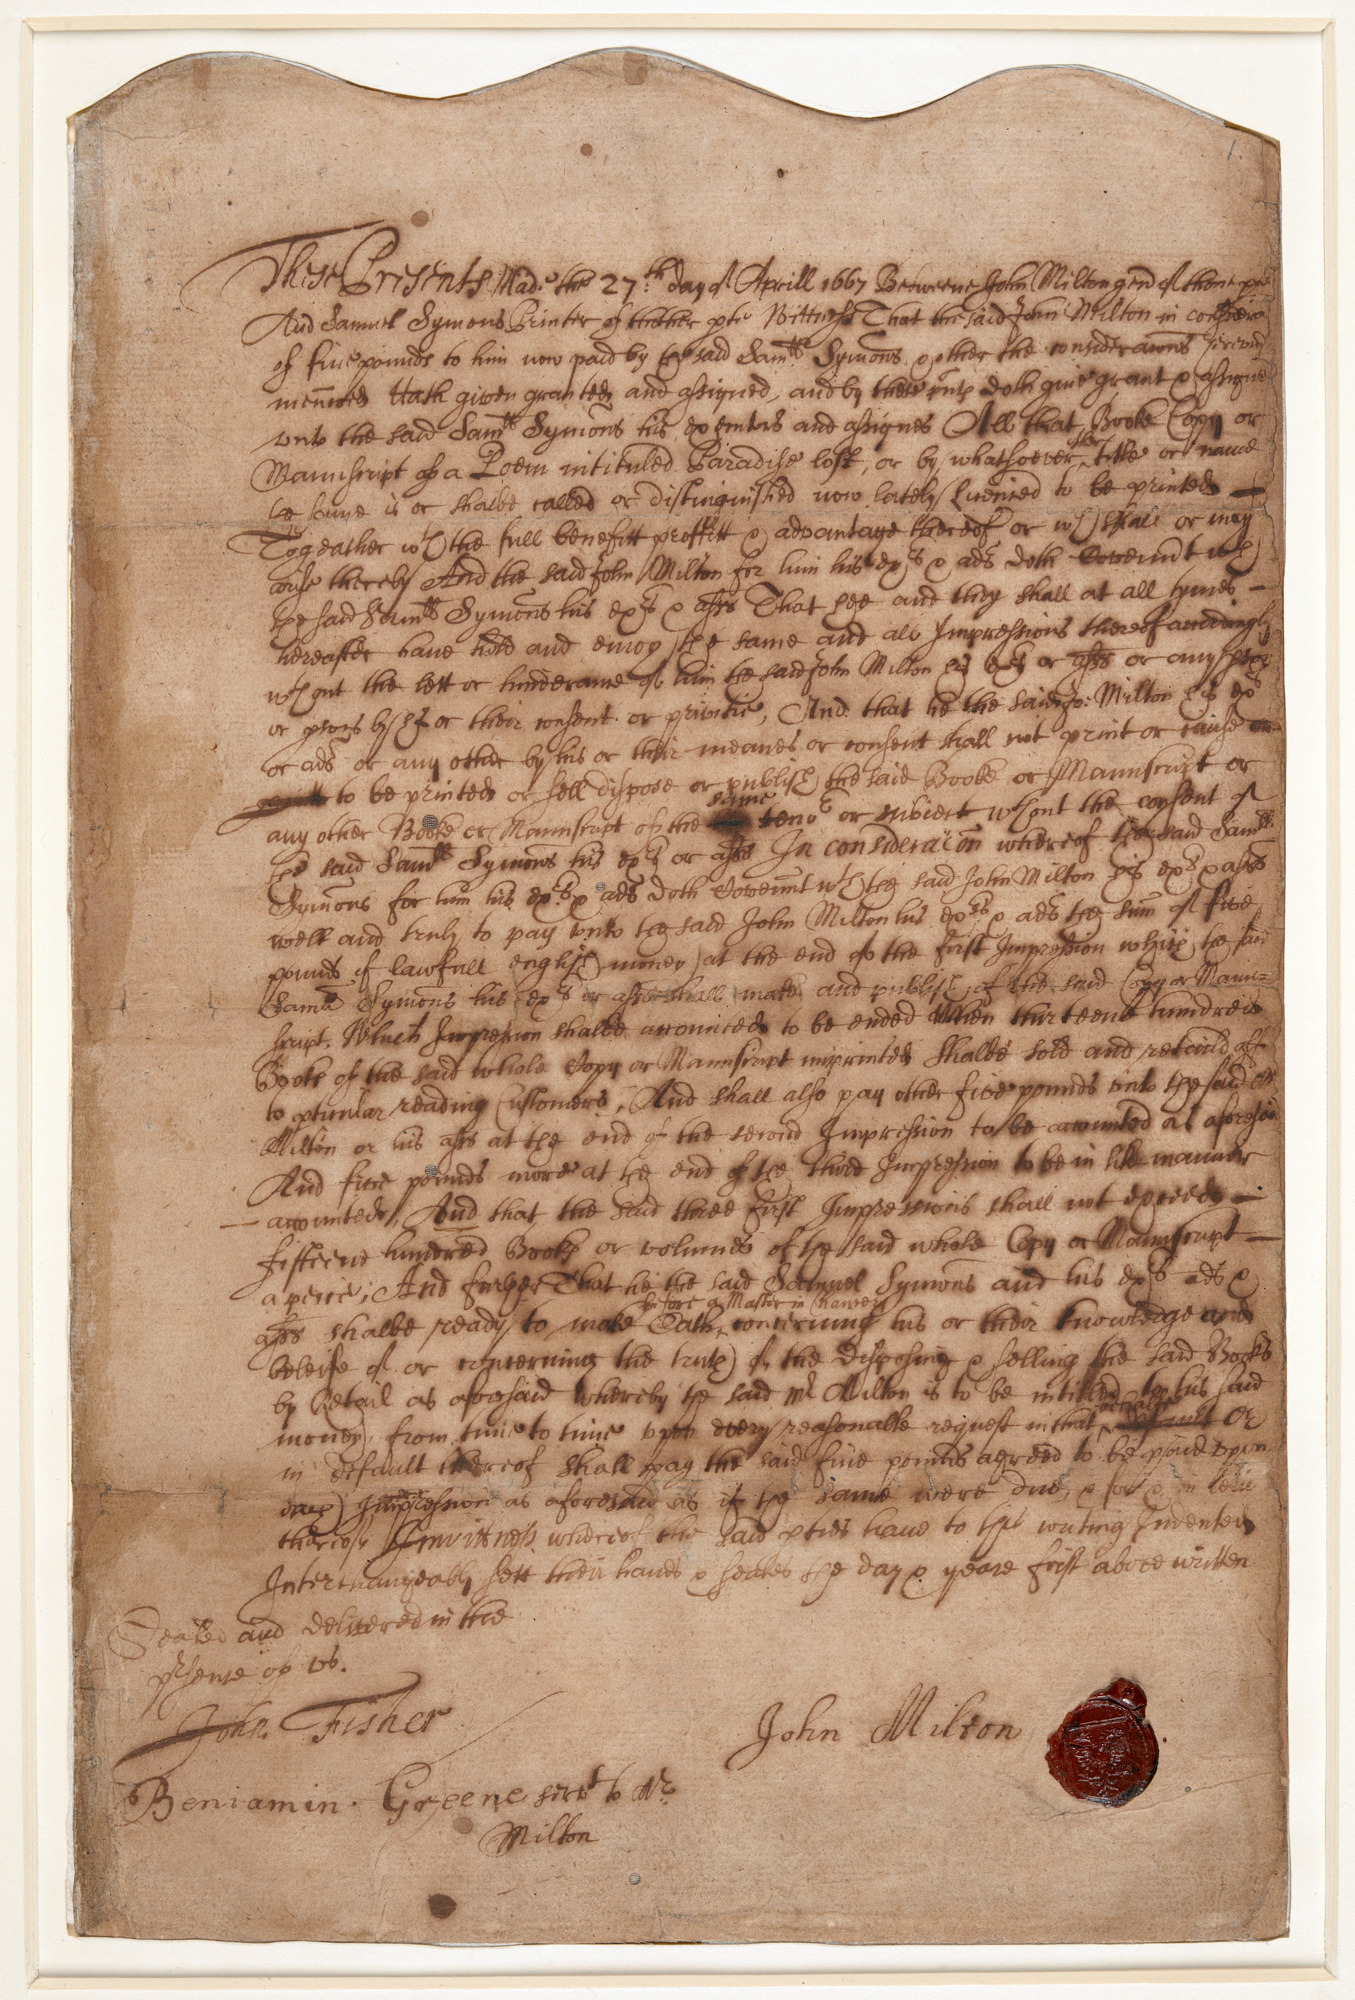 John Milton's publishing contract for Paradise Lost, 1667